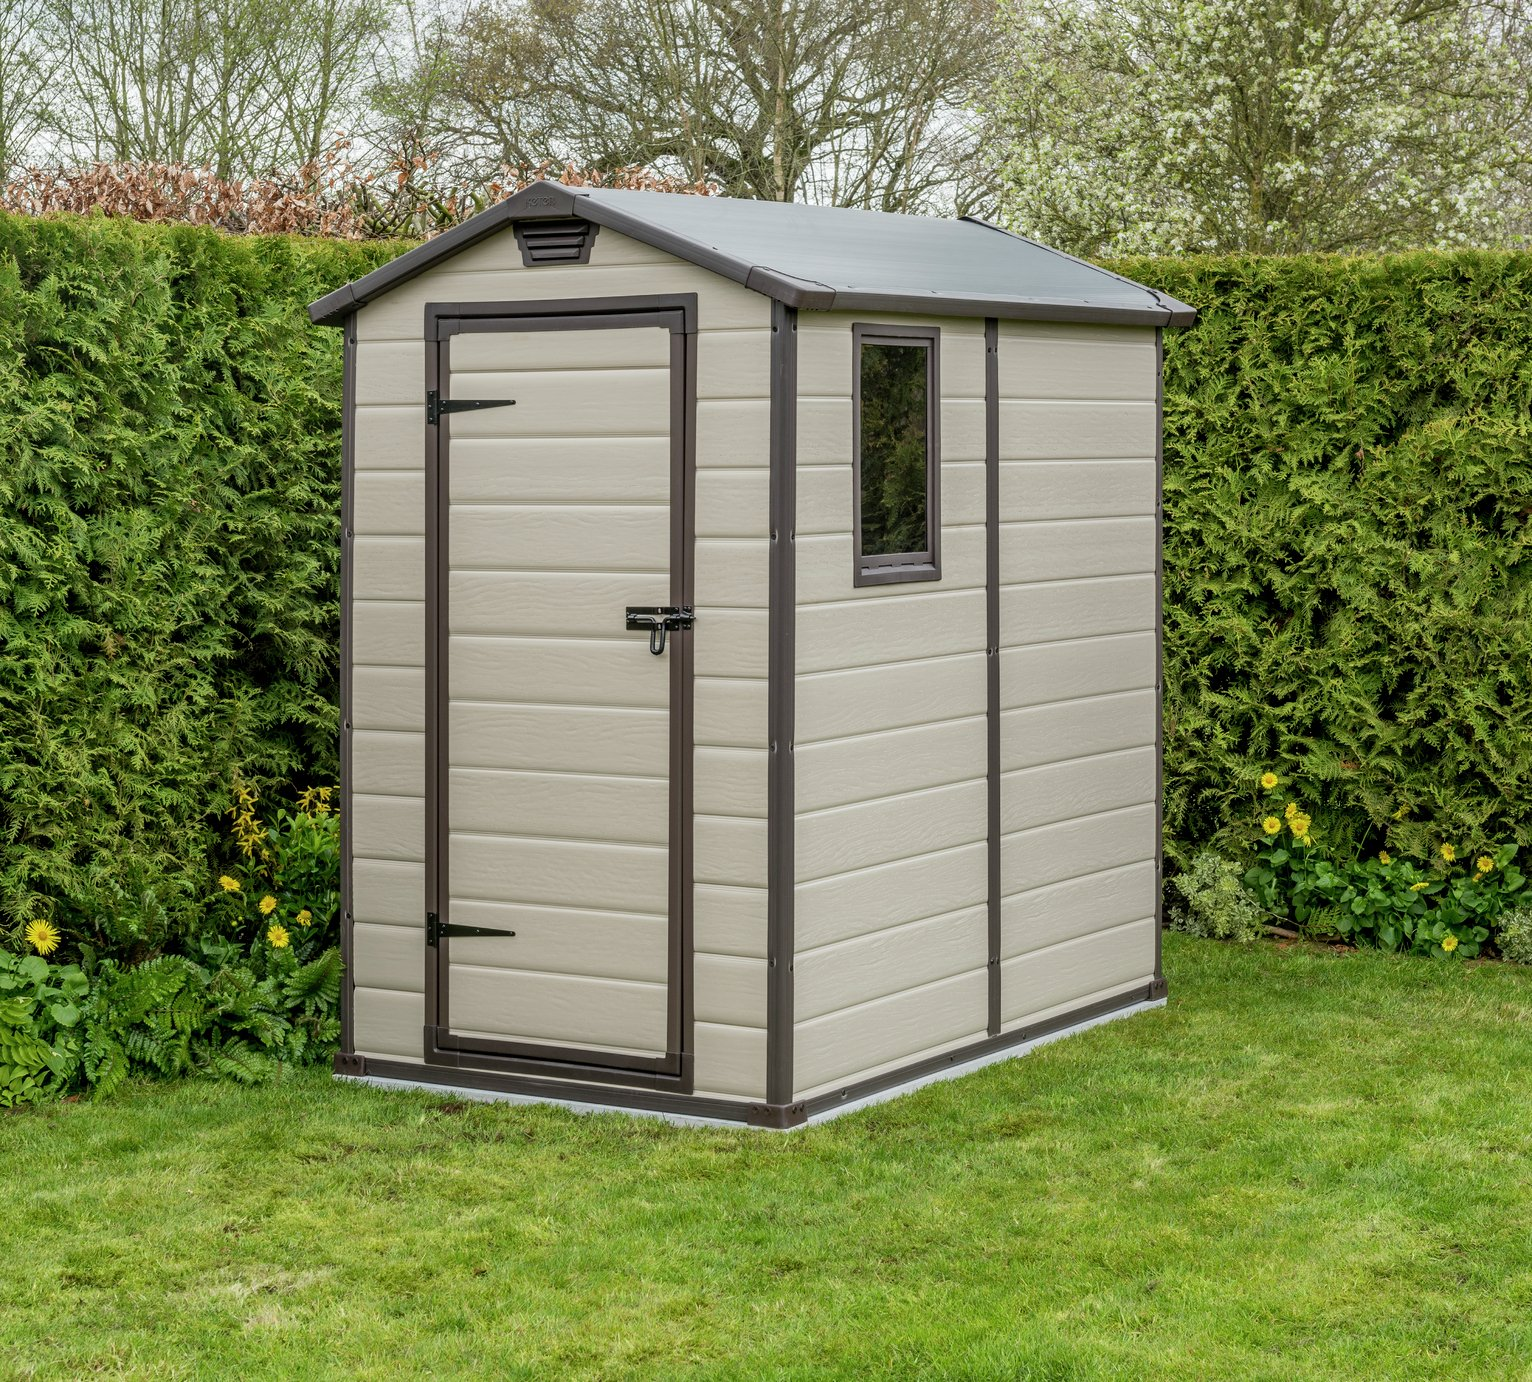 Garden Sheds 6x4 buy keter manor plastic beige & brown garden shed - 4 x 6ft at